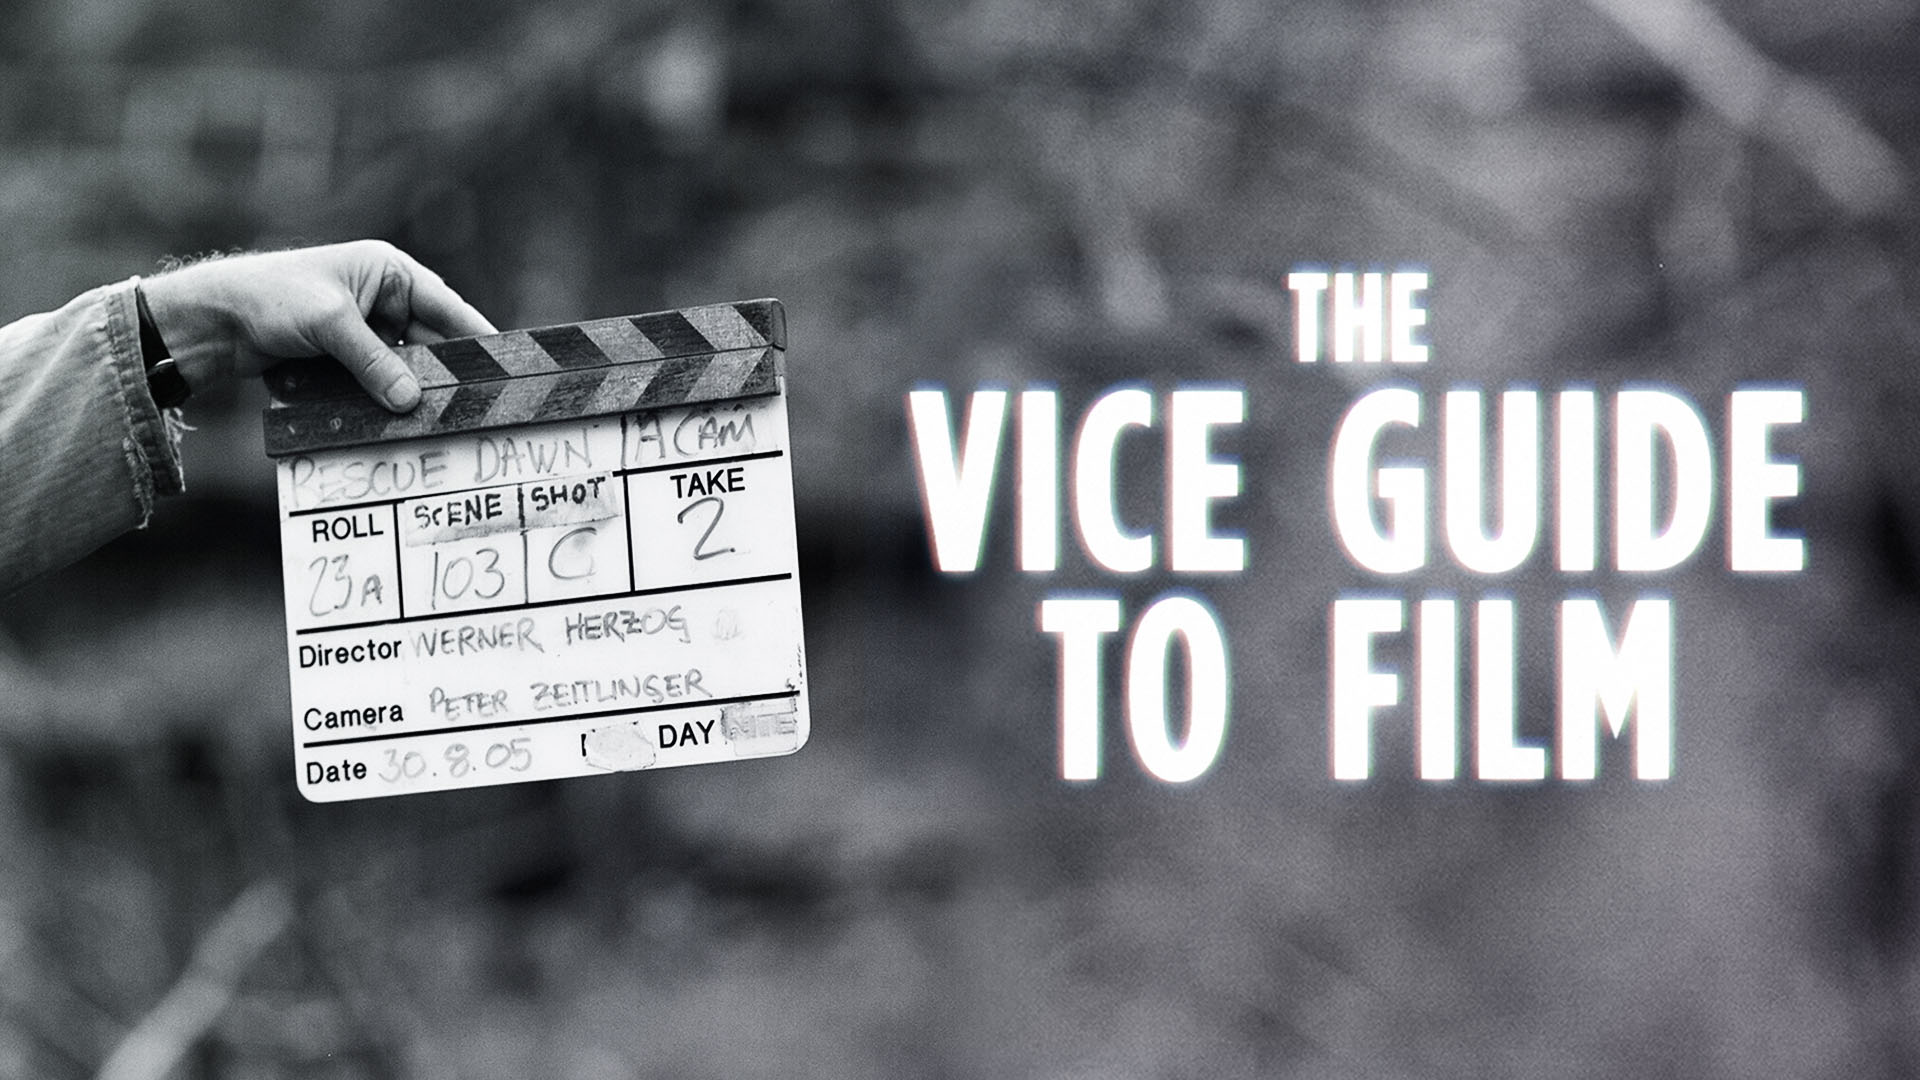 Vice guide online dating matchmaking WOWP